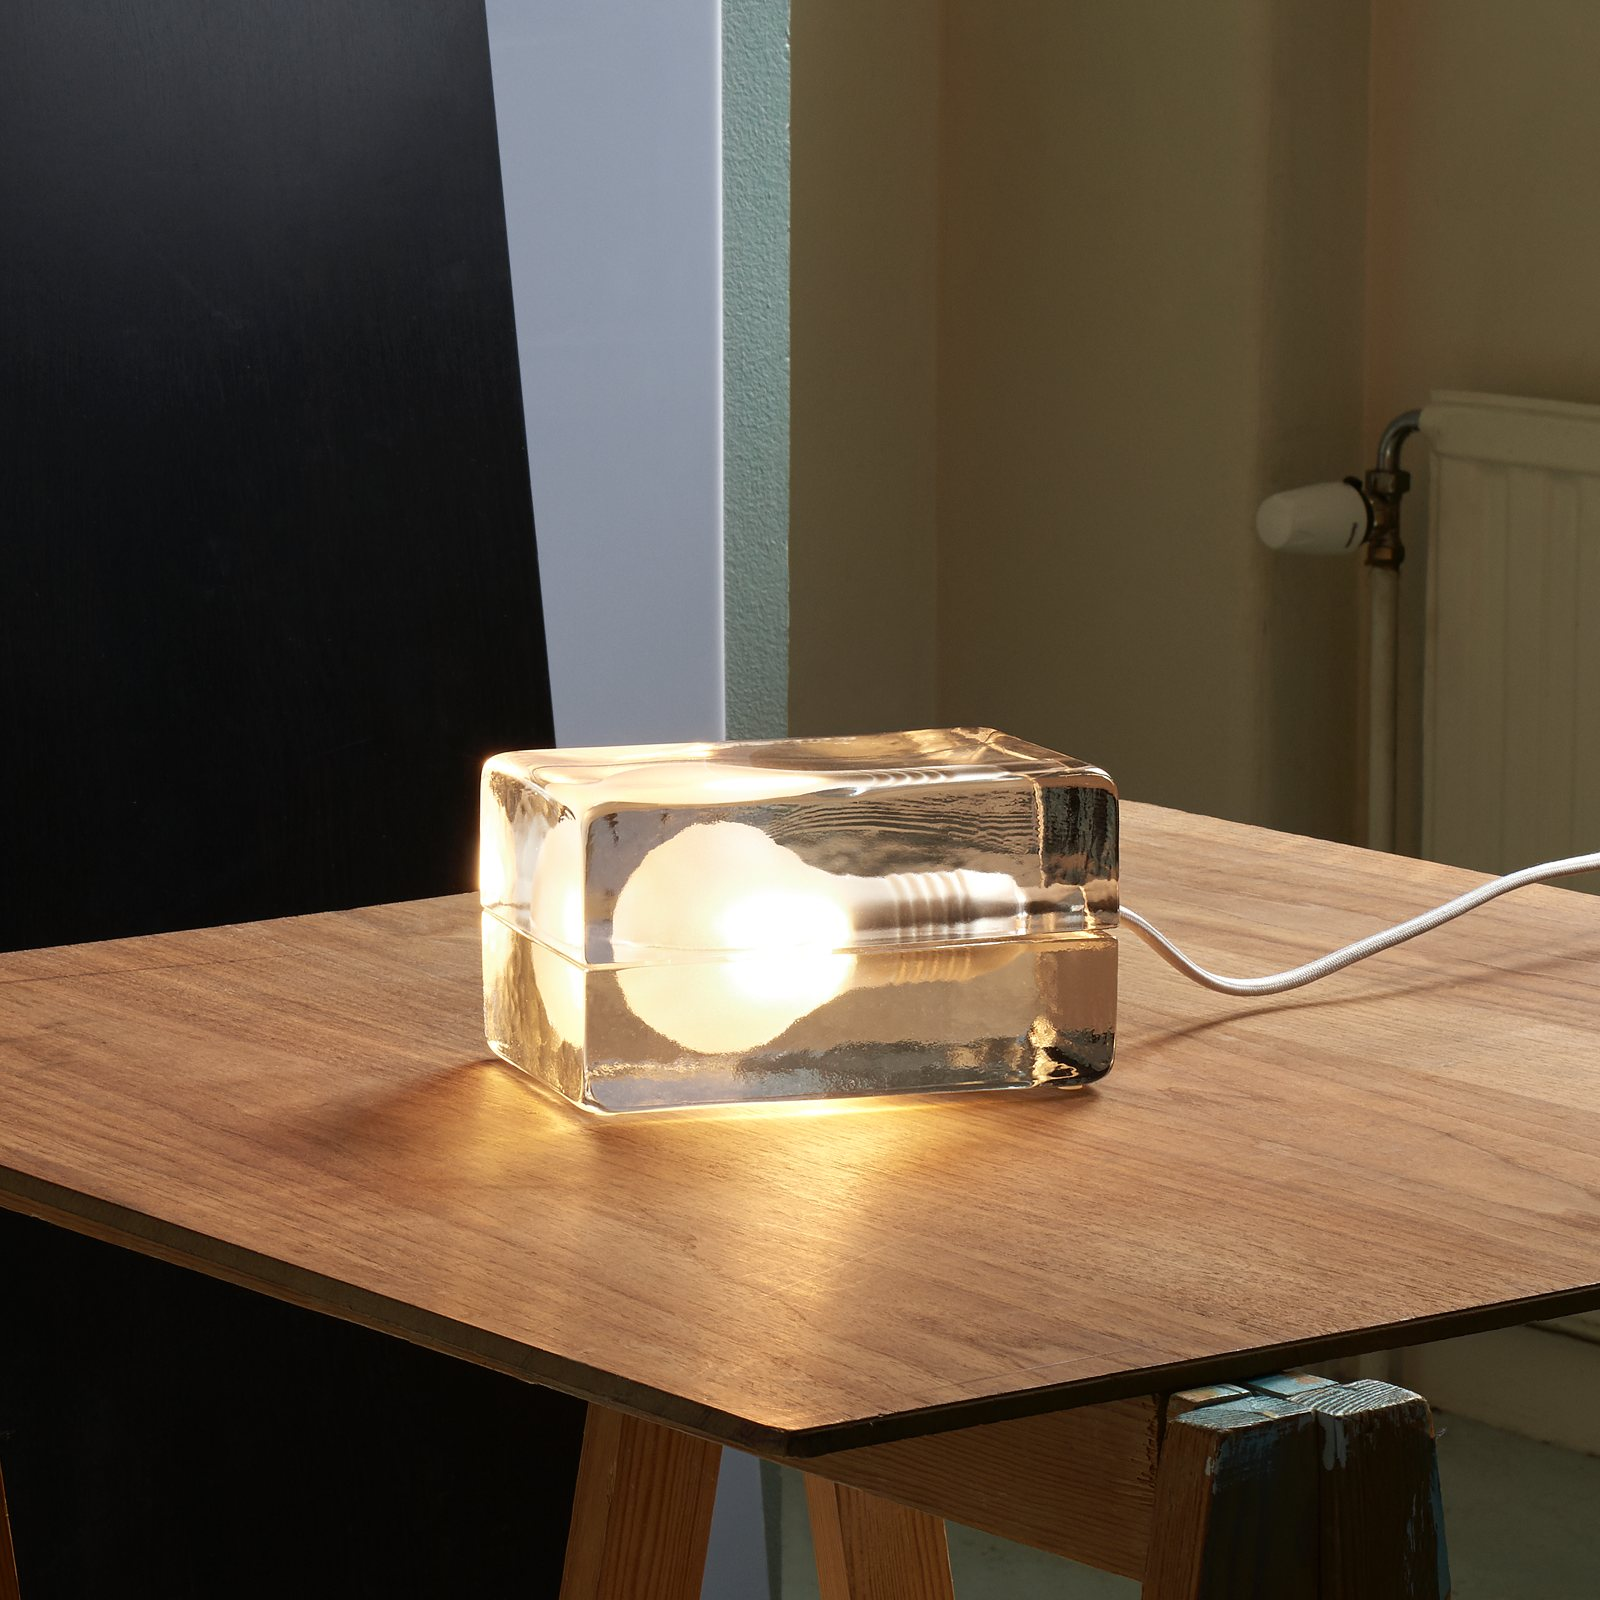 Block Lamp By Harri Koskinen For Design House Stockholm